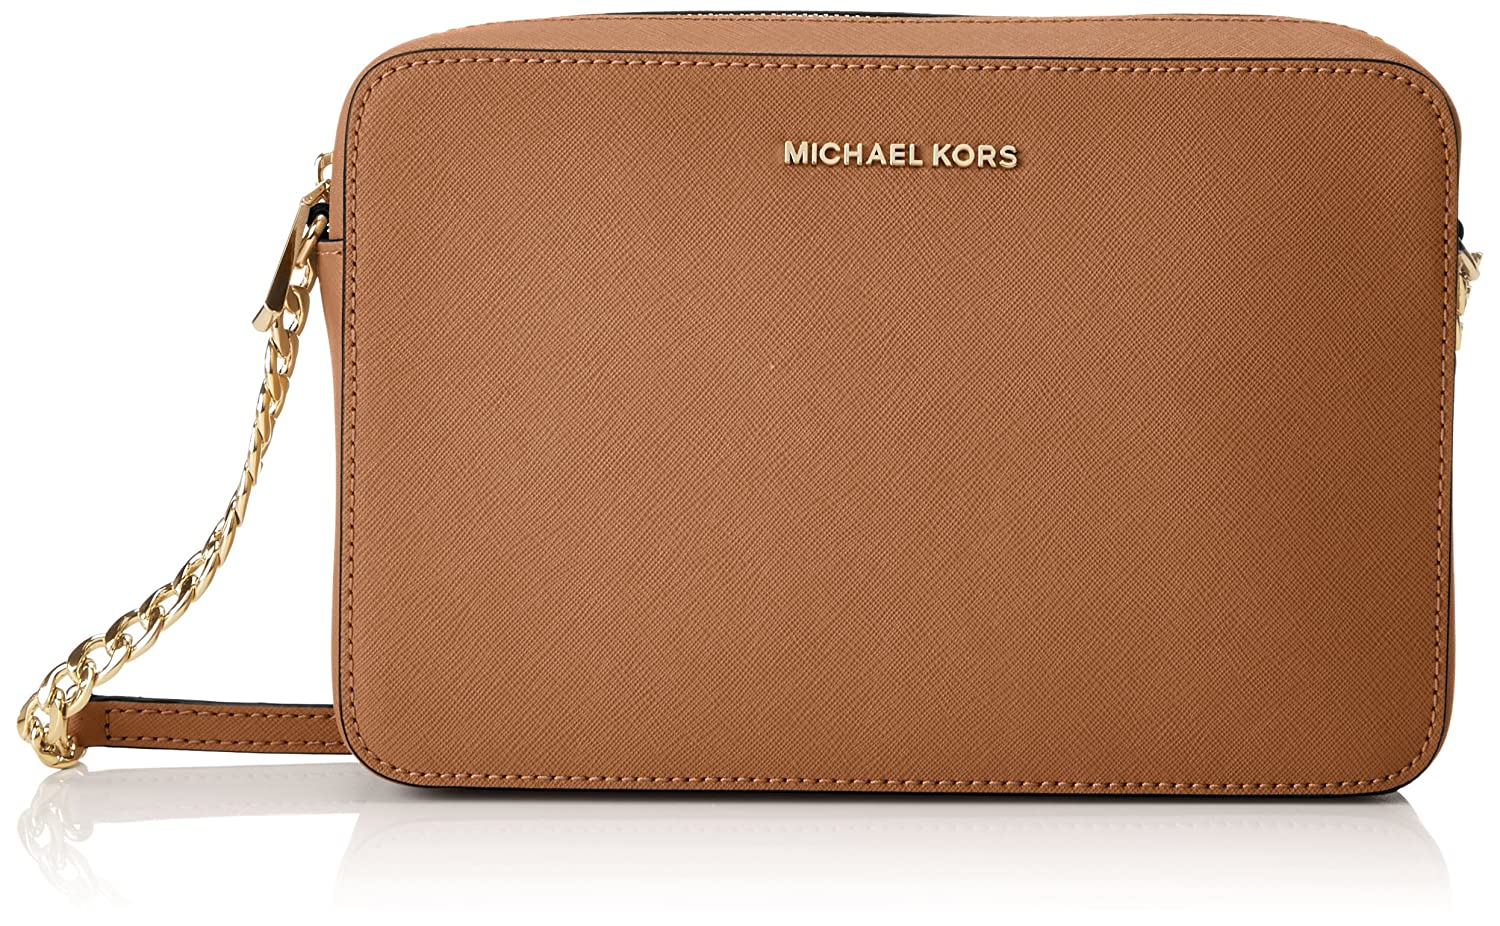 5230e0bfeaf7 Michael Kors Womens Crossbodies Cross-Body Bag Brown (Acorn): Amazon.co.uk:  Shoes & Bags